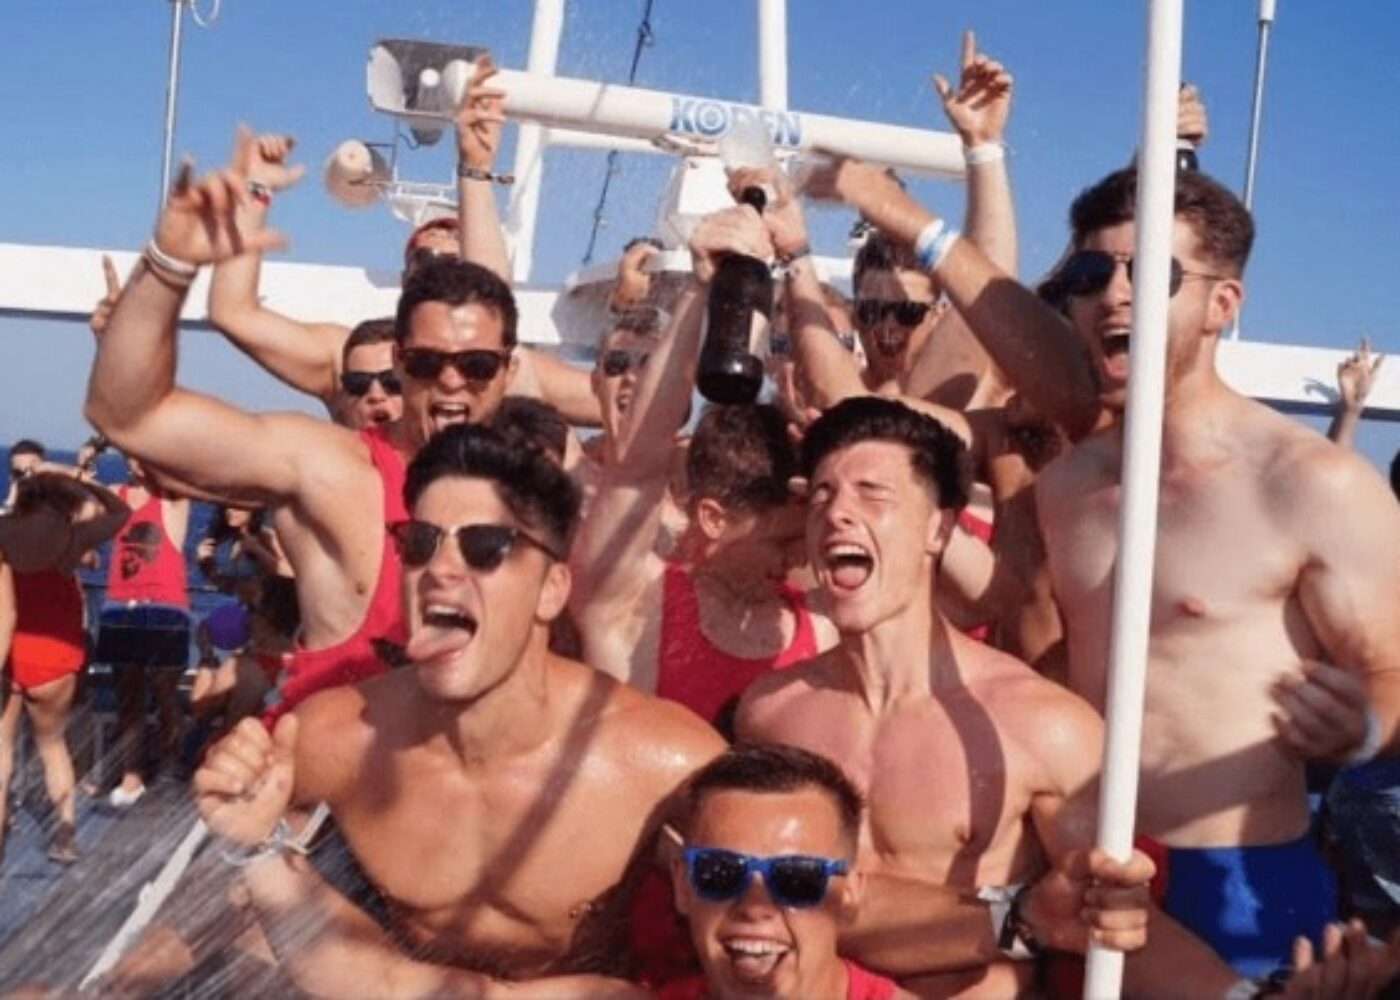 zante champagne showers on vvip yacht party